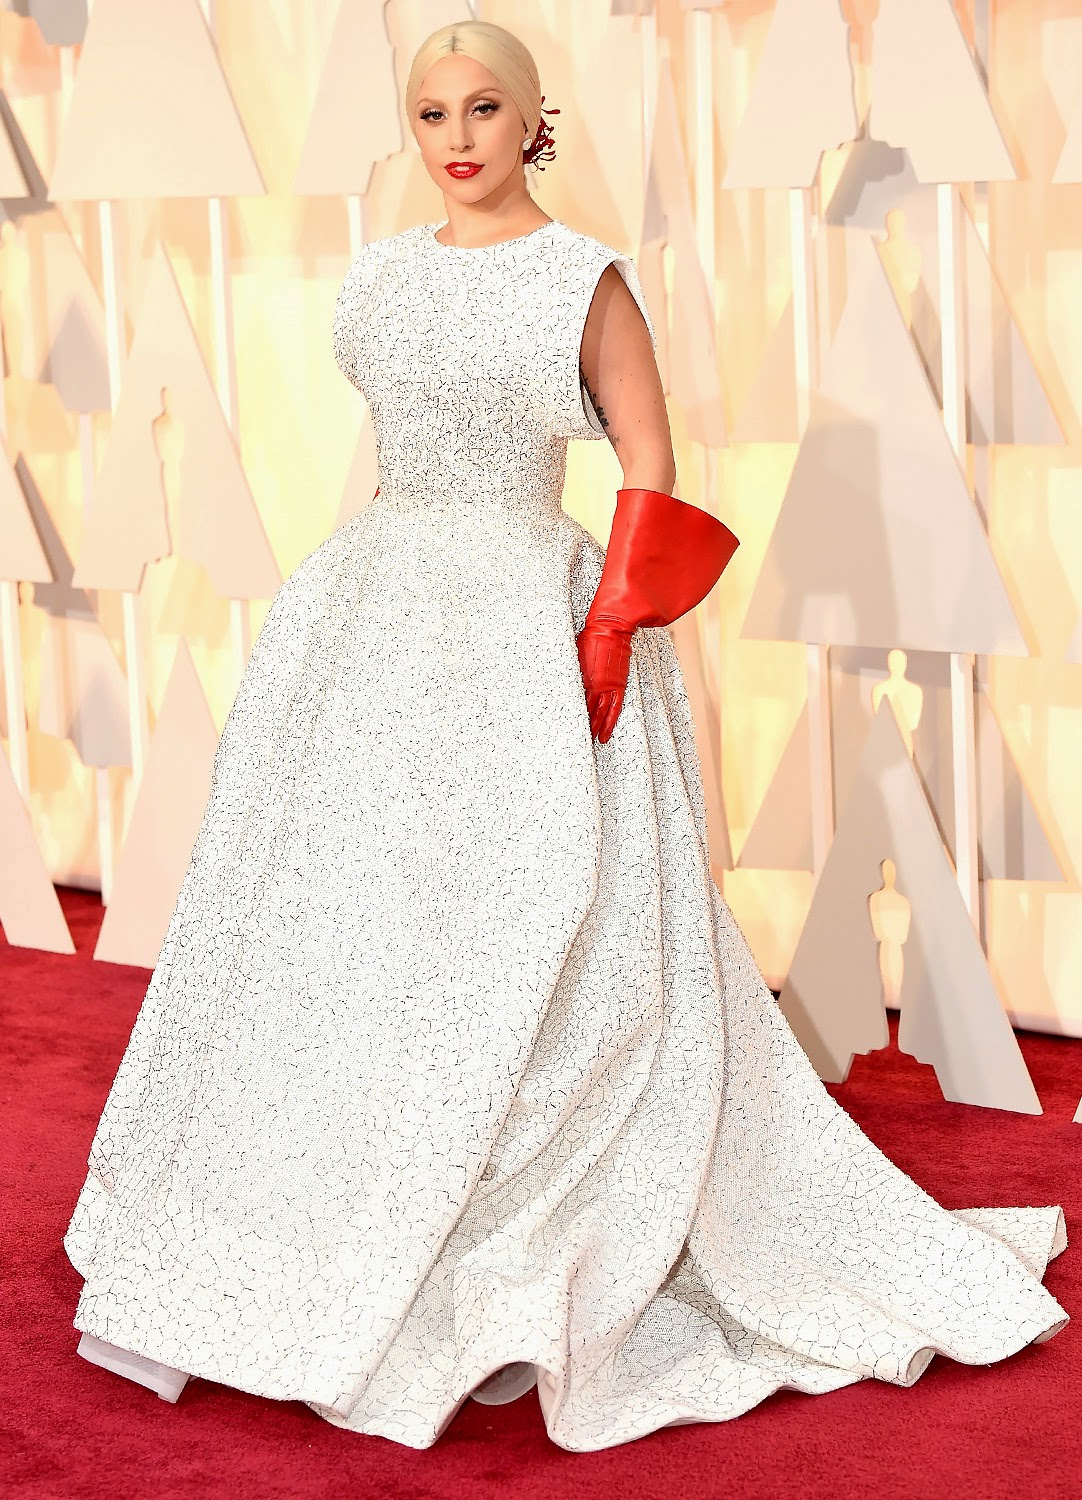 Lady Gaga wears an Azzedine Alaia gown to the 2015 Oscars in Hollywood